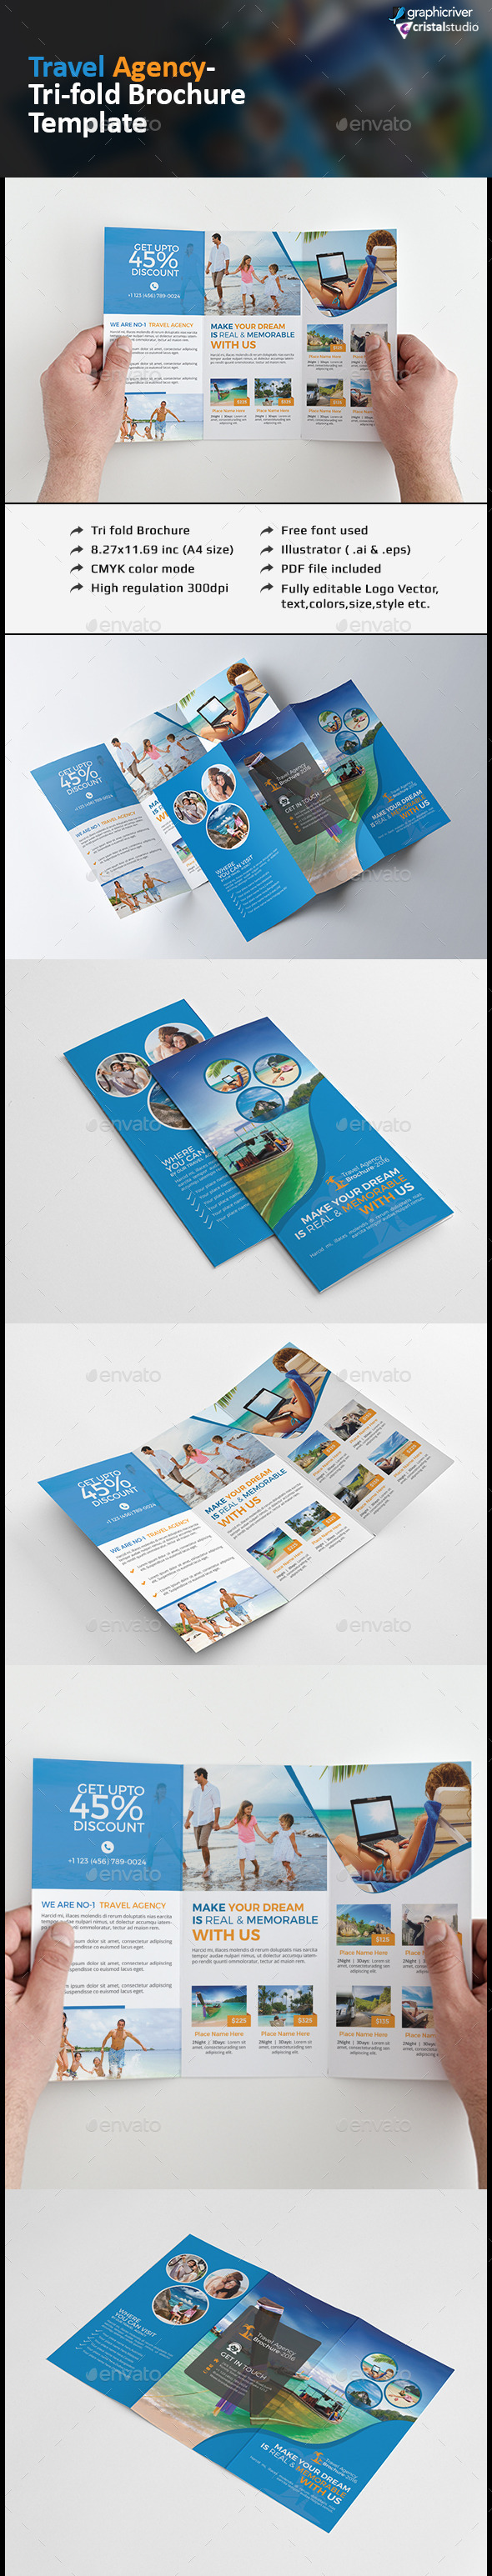 Travel Agency Tri fold Brochure - Corporate Brochures